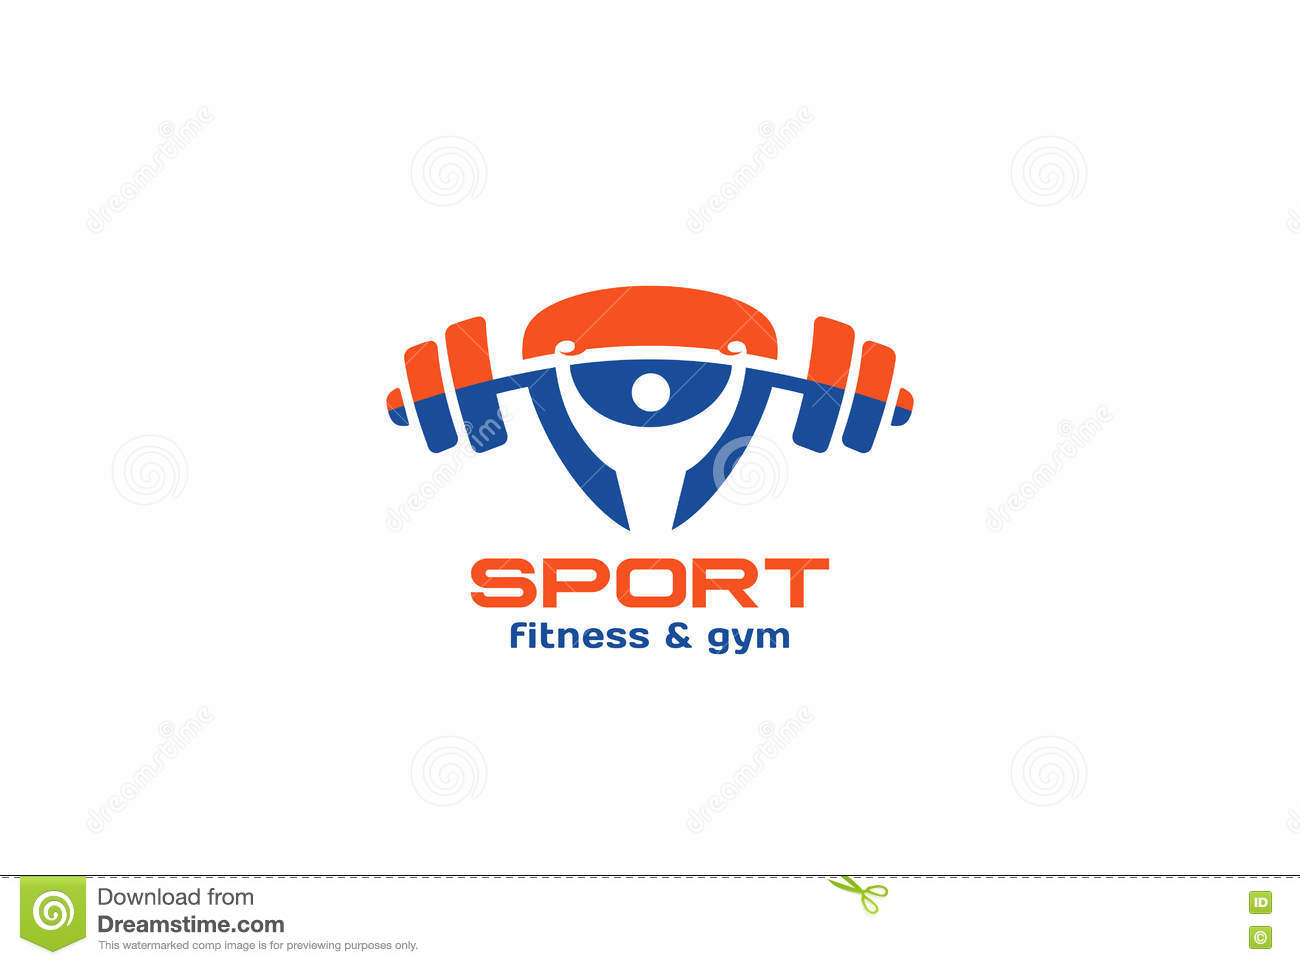 Sport Gym Fitness Logo Design Vector Triangle Stock Vector ... for Logo Design Samples Free Download  66pct